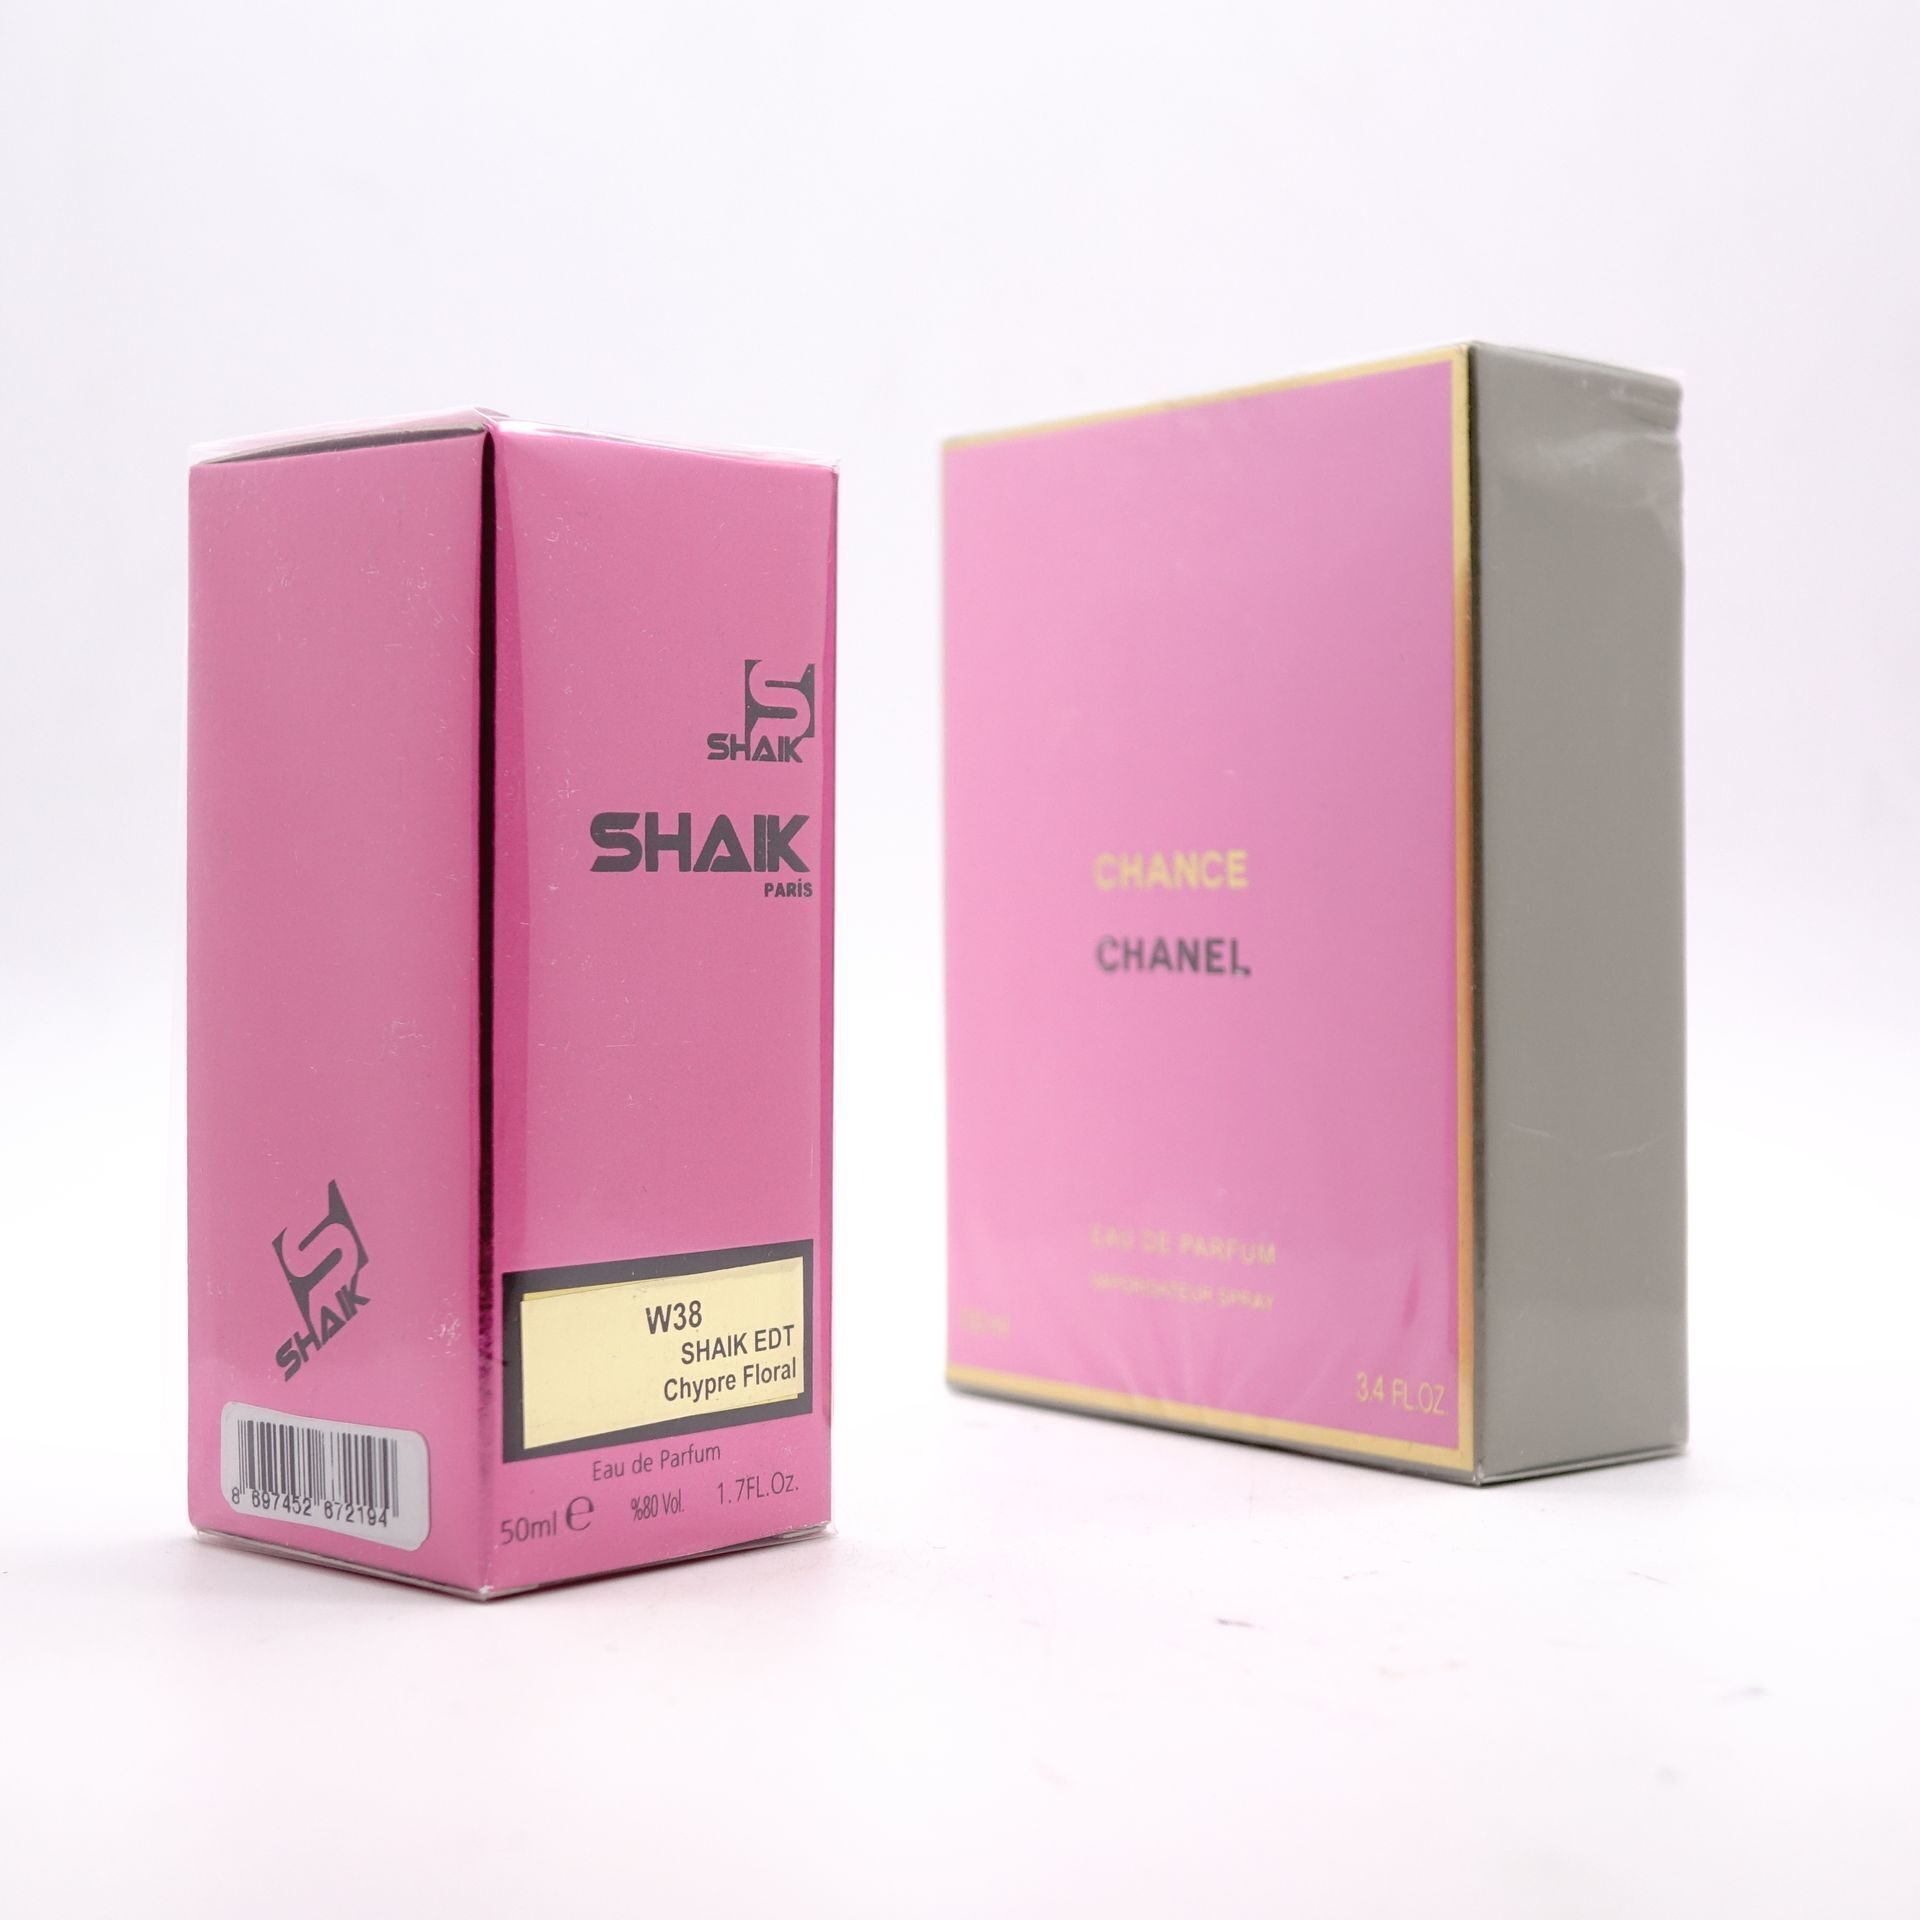 SHAIK W 38 (CHANEL CHANCE EDP FOR WOMEN) 50ml